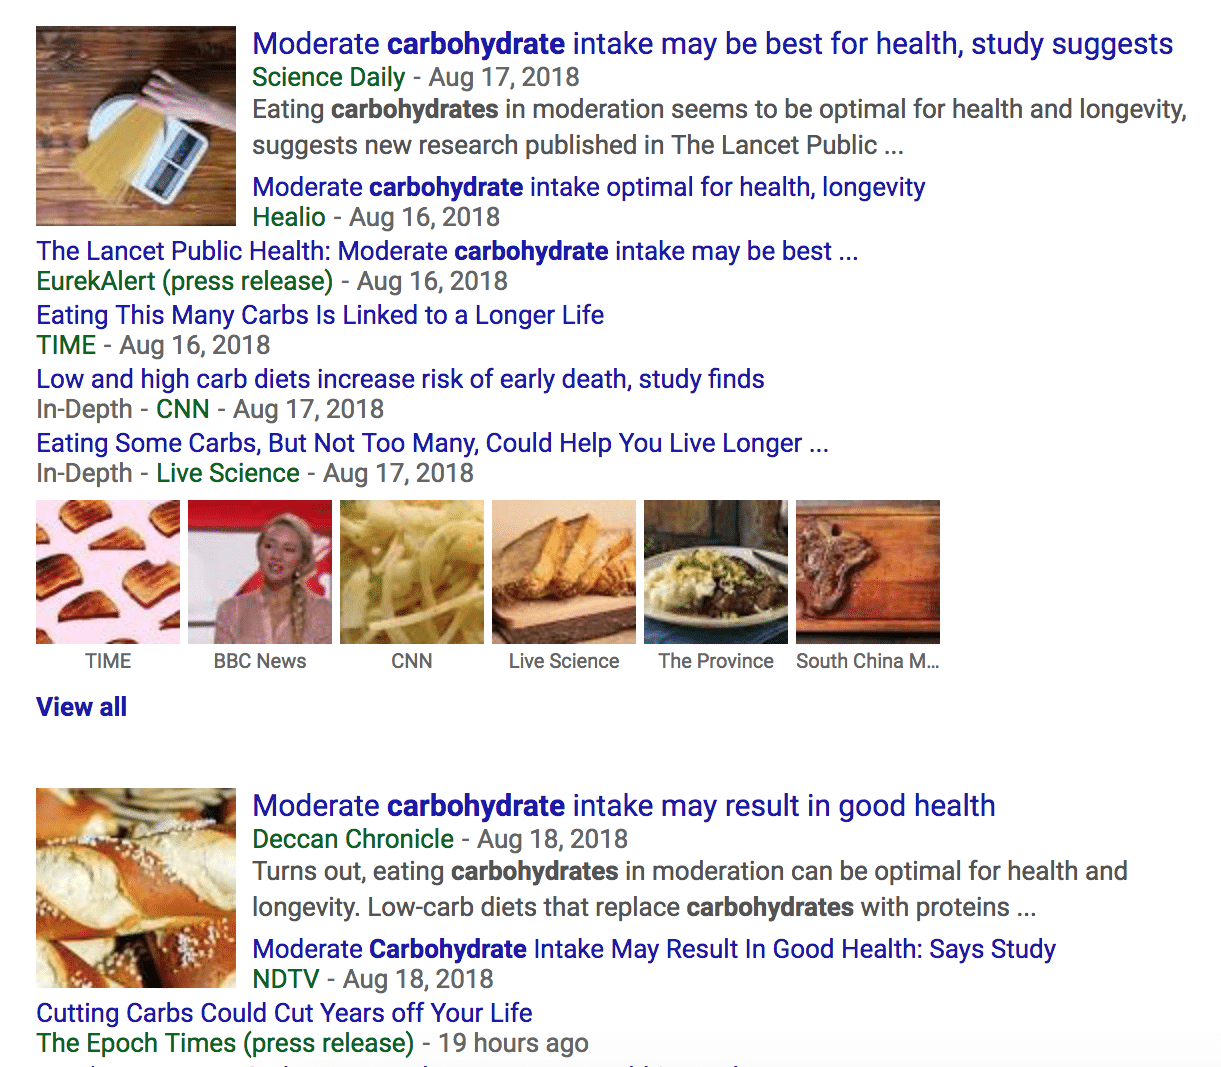 The media's reaction to the results of the carbohydrate study